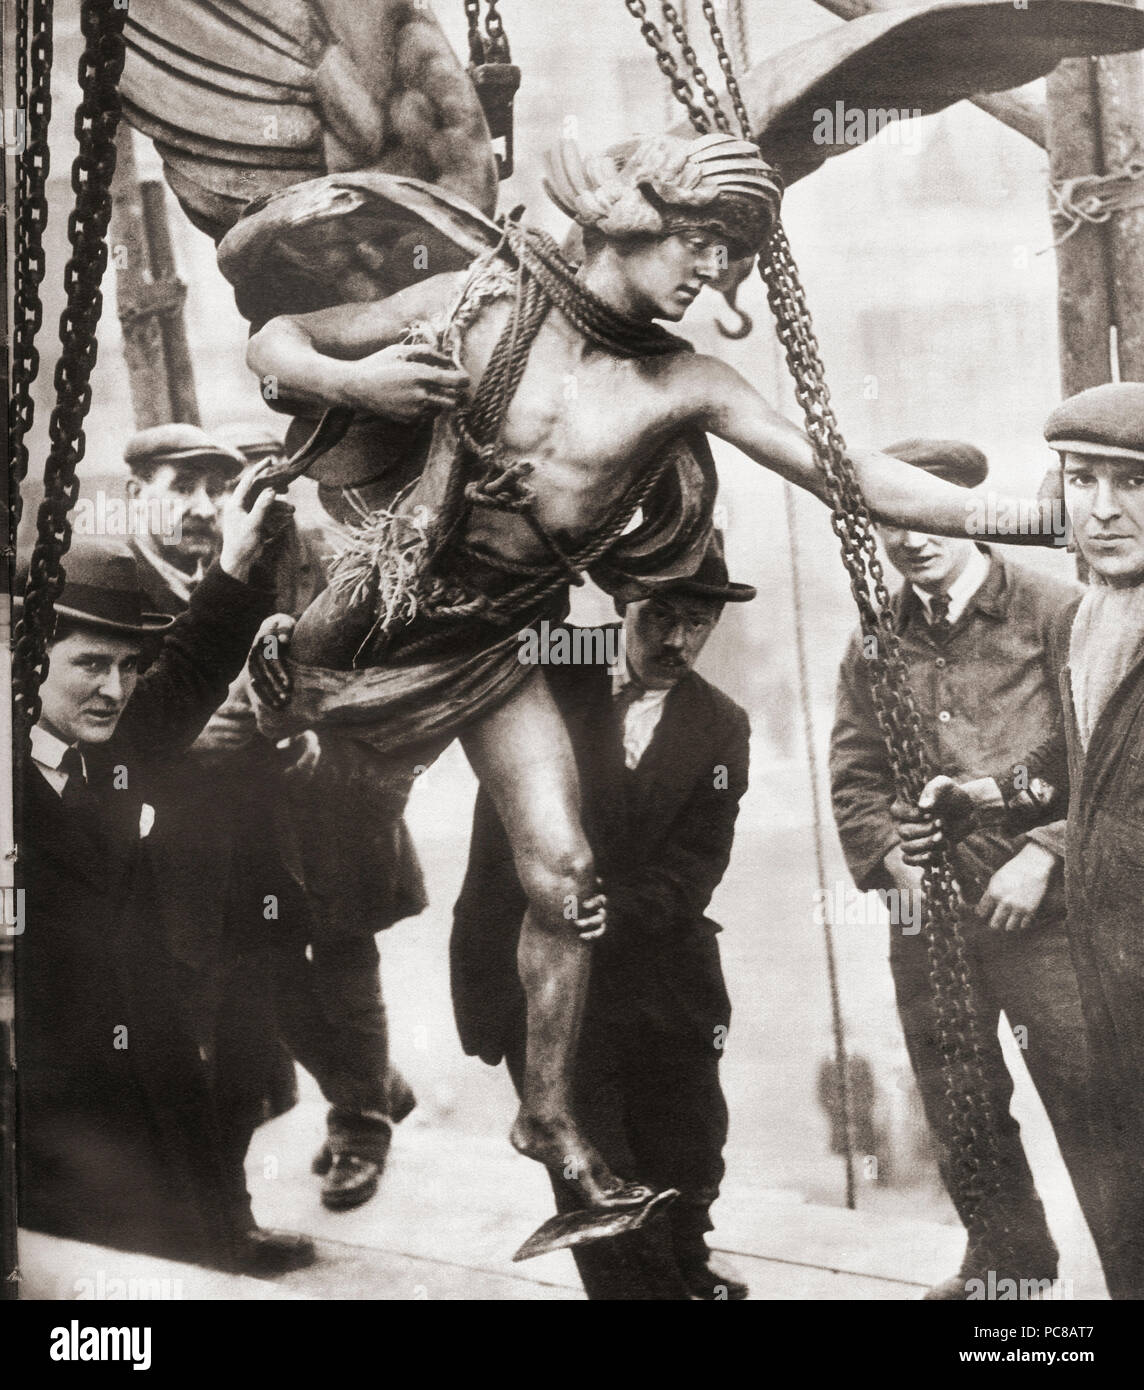 The removal of the statue of Eros from Piccadilly Circus to Embankment Gardens in 1925 during the reconstruction of Piccadilly Tube Station.  From These Tremendous Years, published 1938. - Stock Image